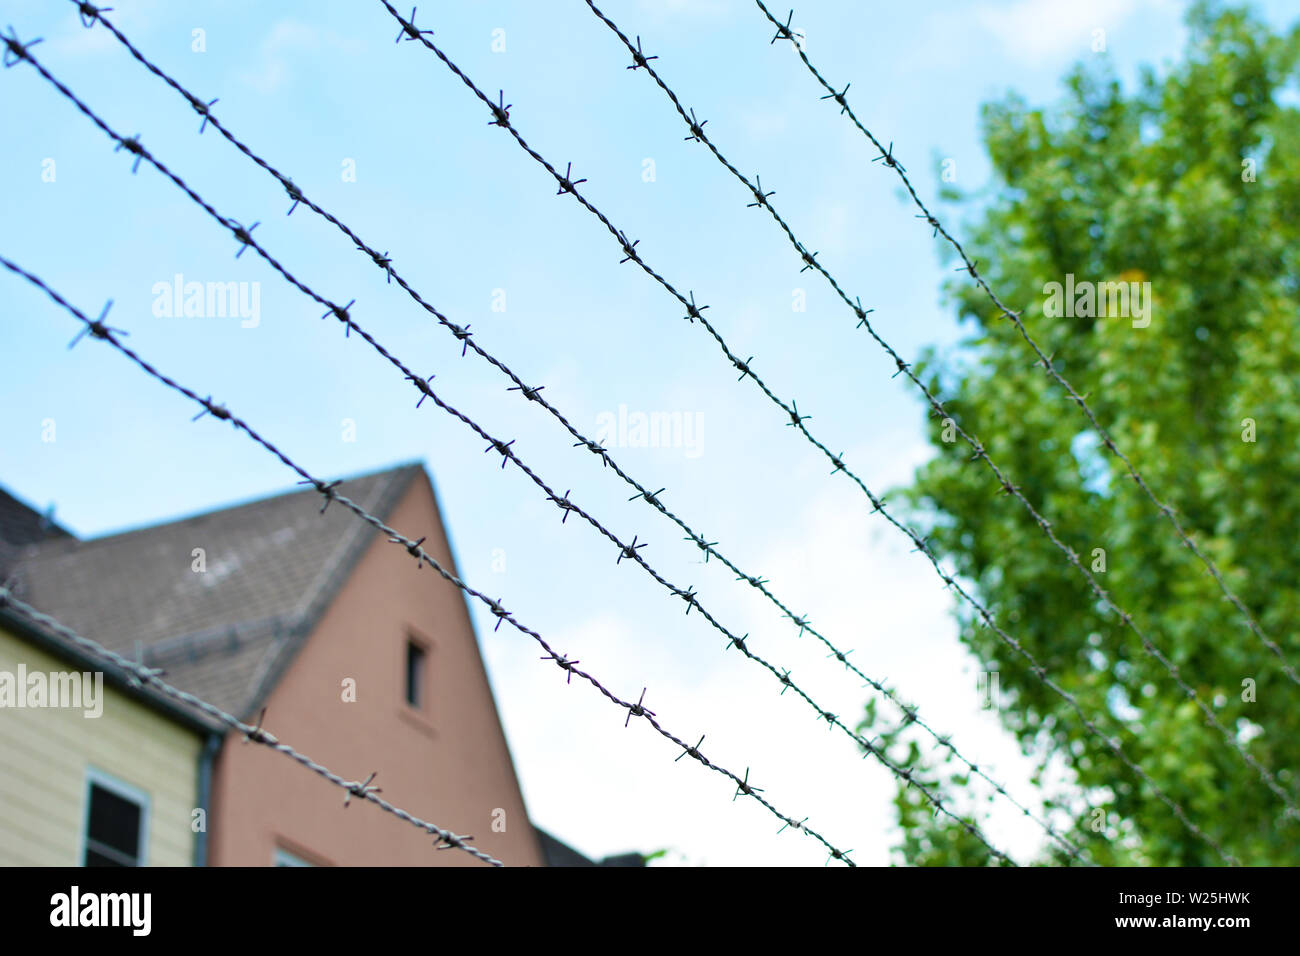 Barbed wire fence with blurry building and blue sky in background - Stock Image